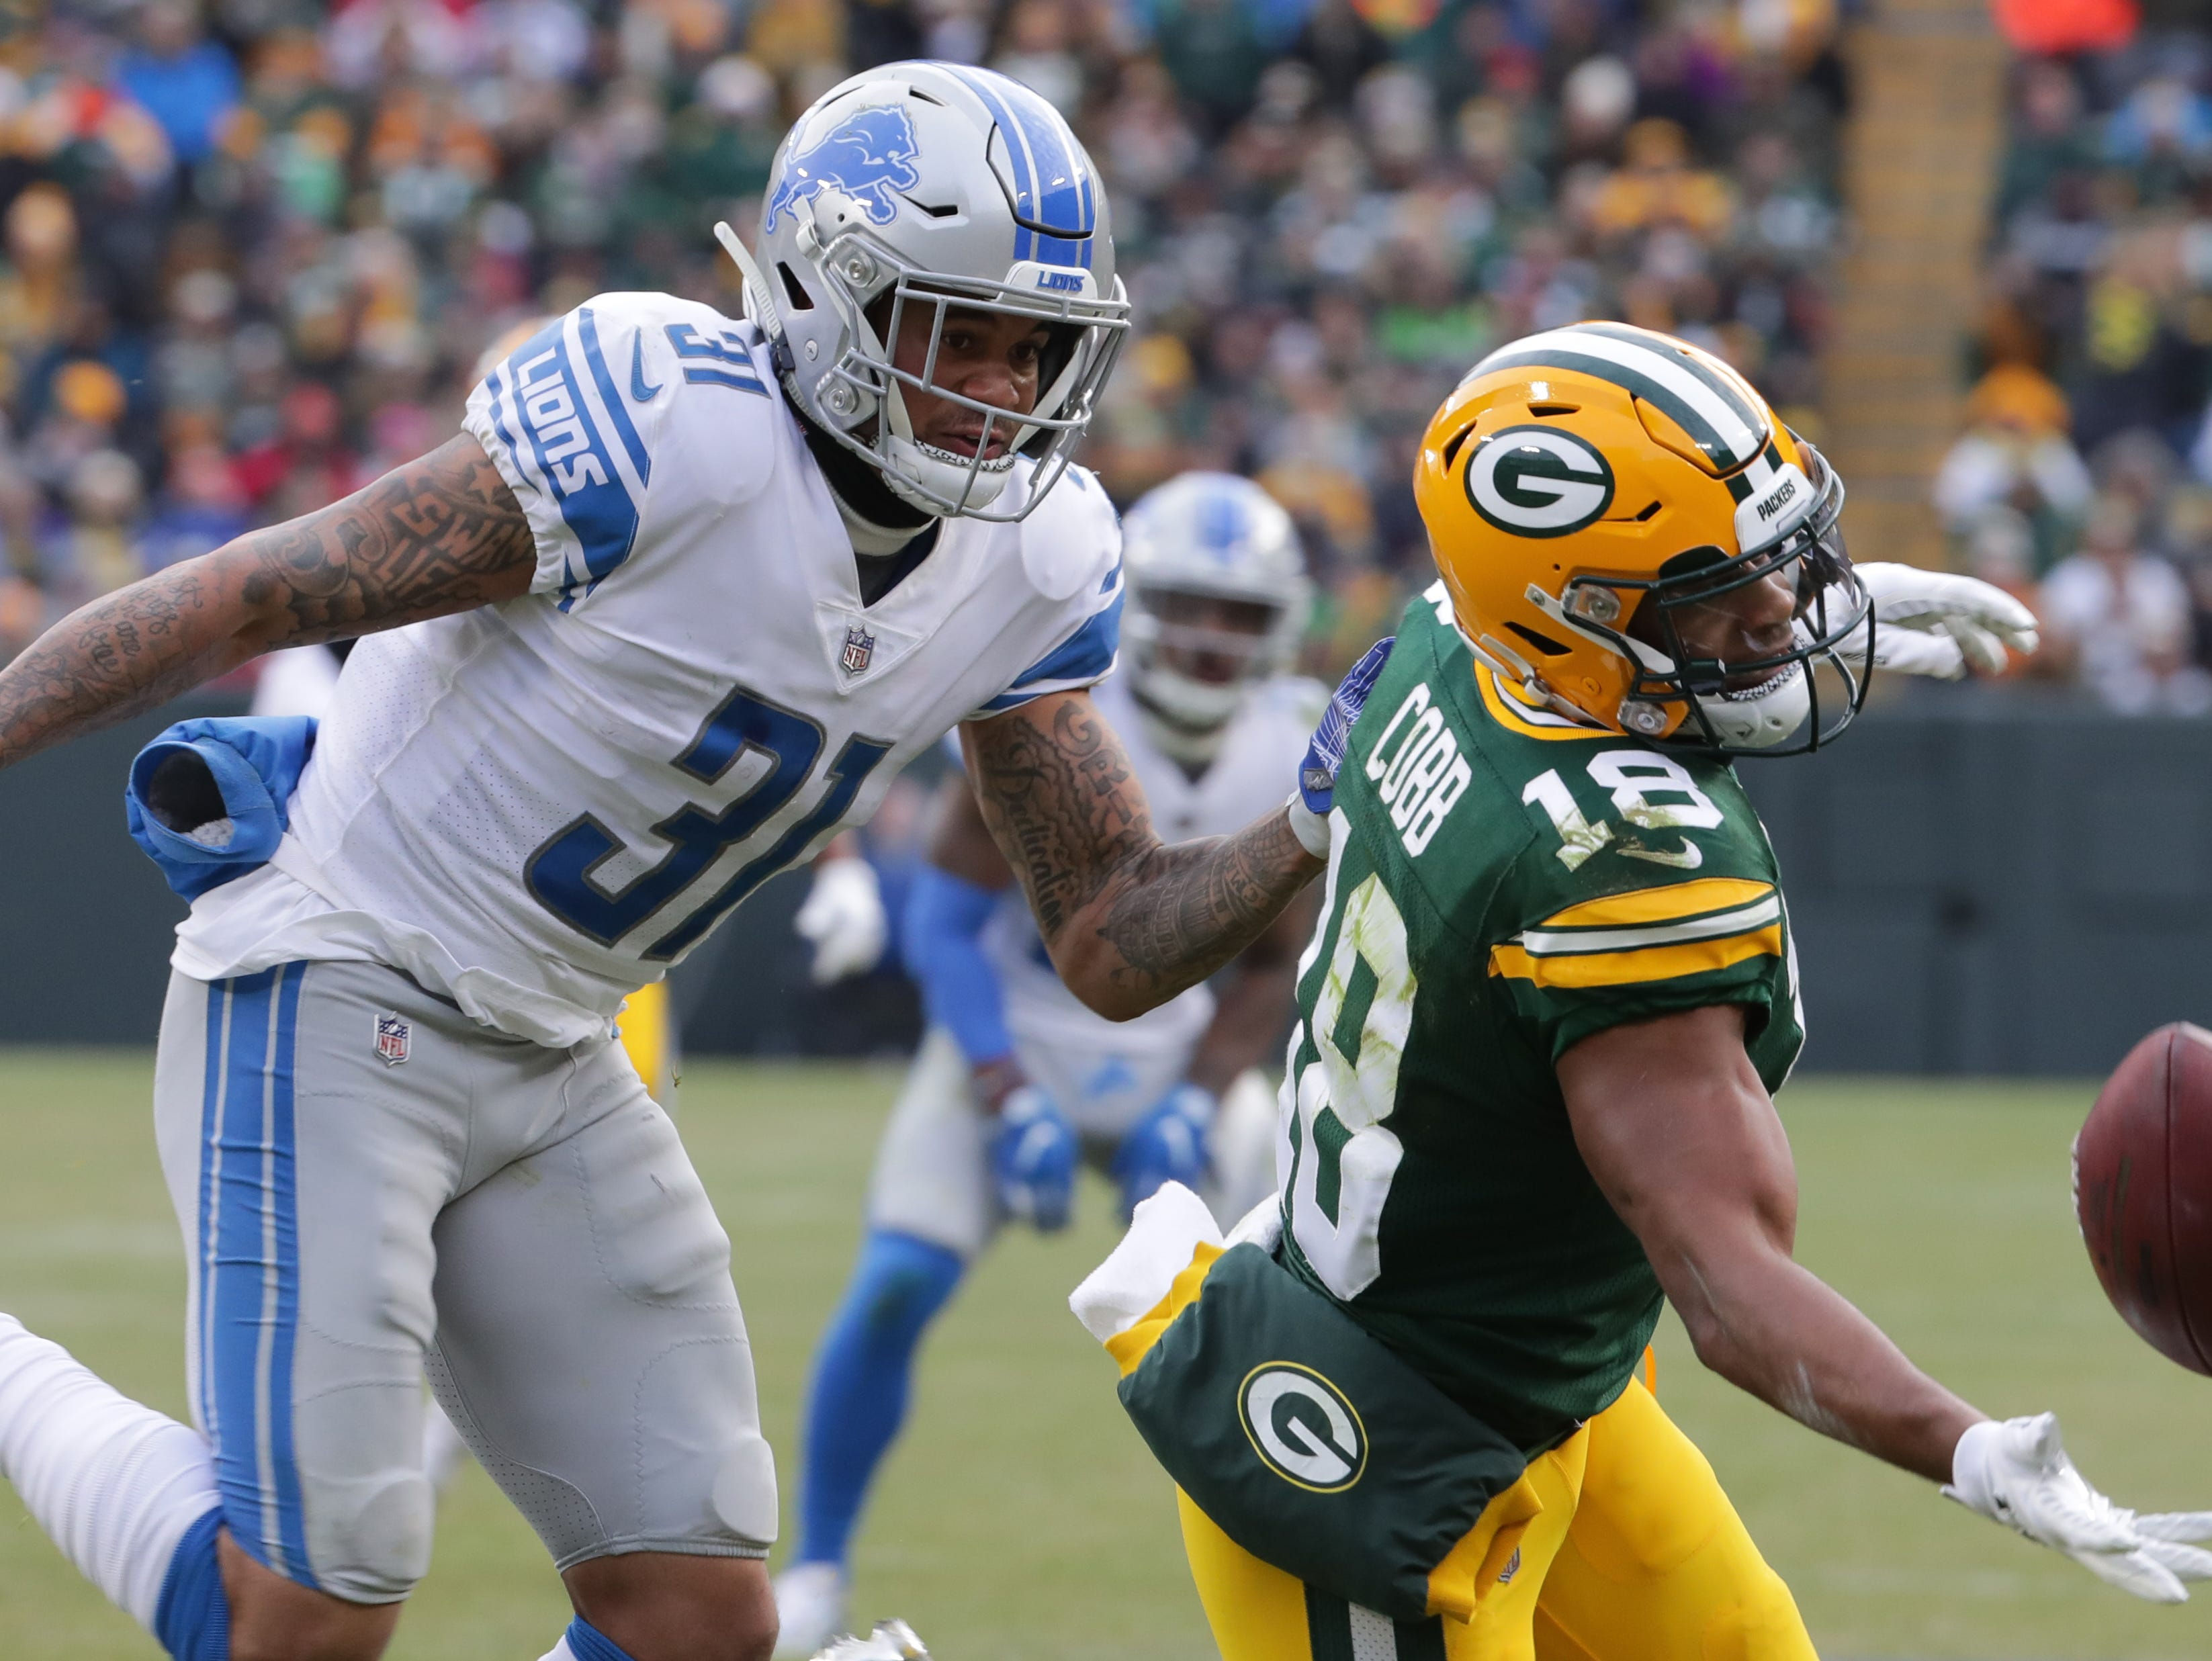 Green Bay Packers wide receiver Randall Cobb (18) is unable reel in a catch while being covered by Detroit Lions cornerback Teez Tabor (31) during the fourth quarter of their game Sunday, December 30, 2018 at Lambeau Field in Green Bay, Wis. The Detroit Lions beat the Green Bay Packers 31-0.  MARK HOFFMAN/MILWAUKEE JOURNAL SENTINEL